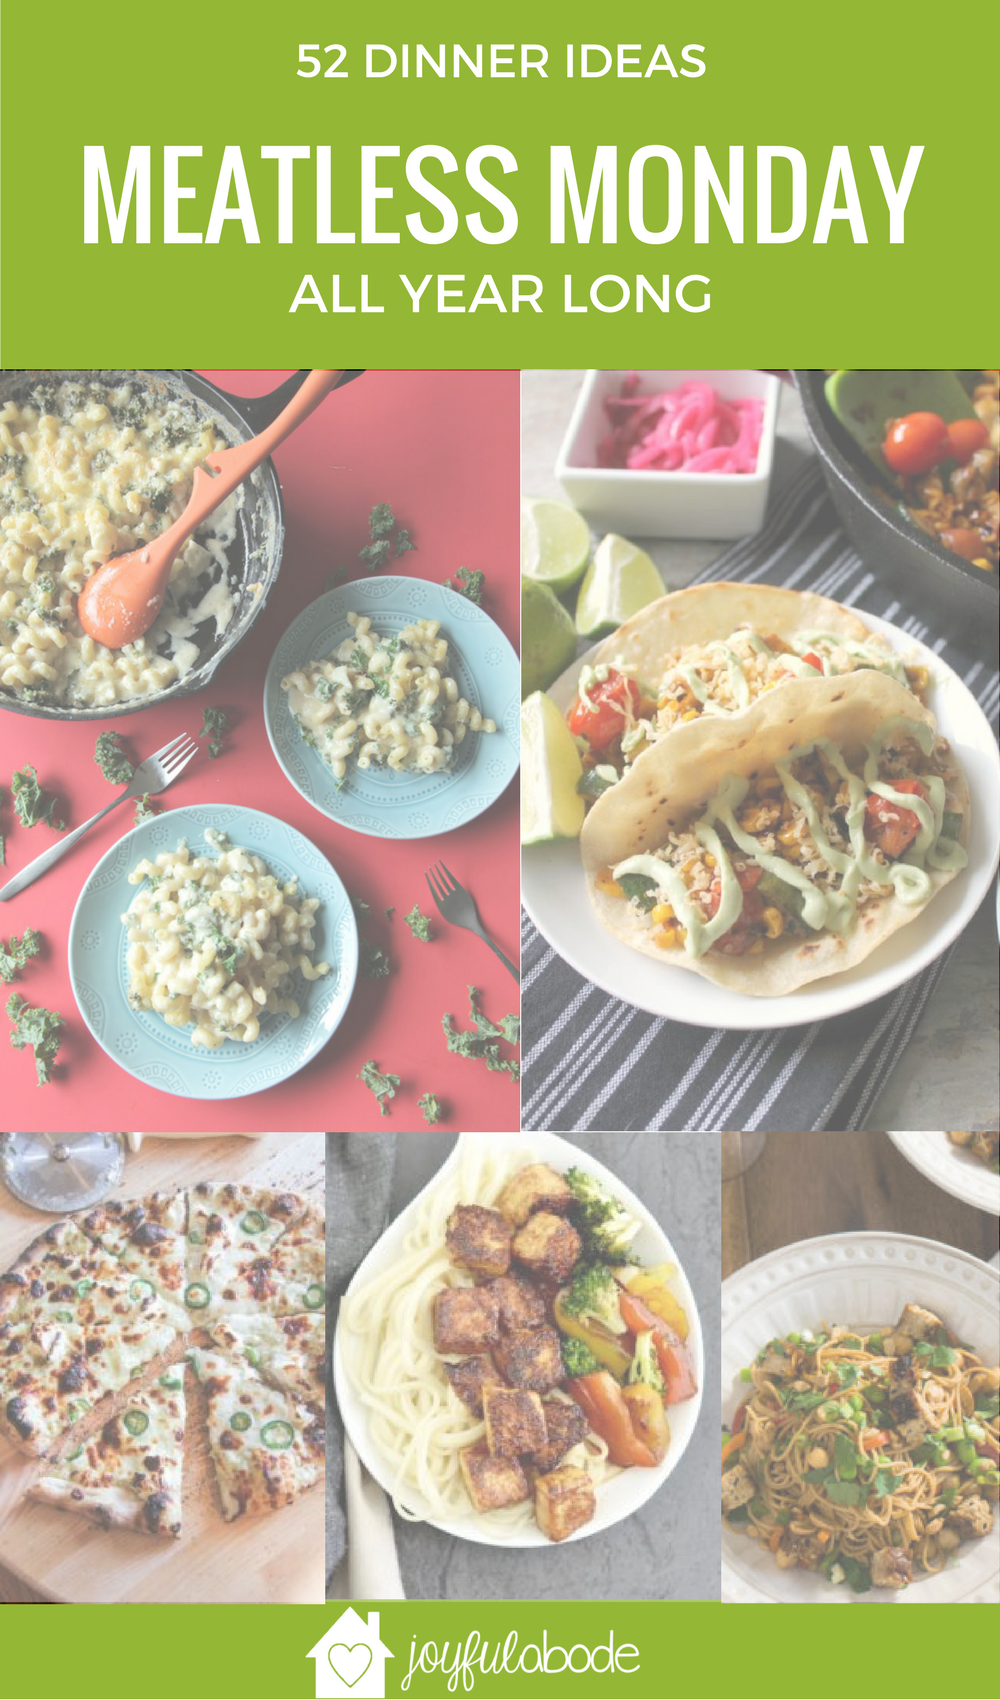 Need some meal planning ideas for your meatless Monday dinners? This post has 52 vegetarian recipes - a full year of Meatless Monday menu planning!